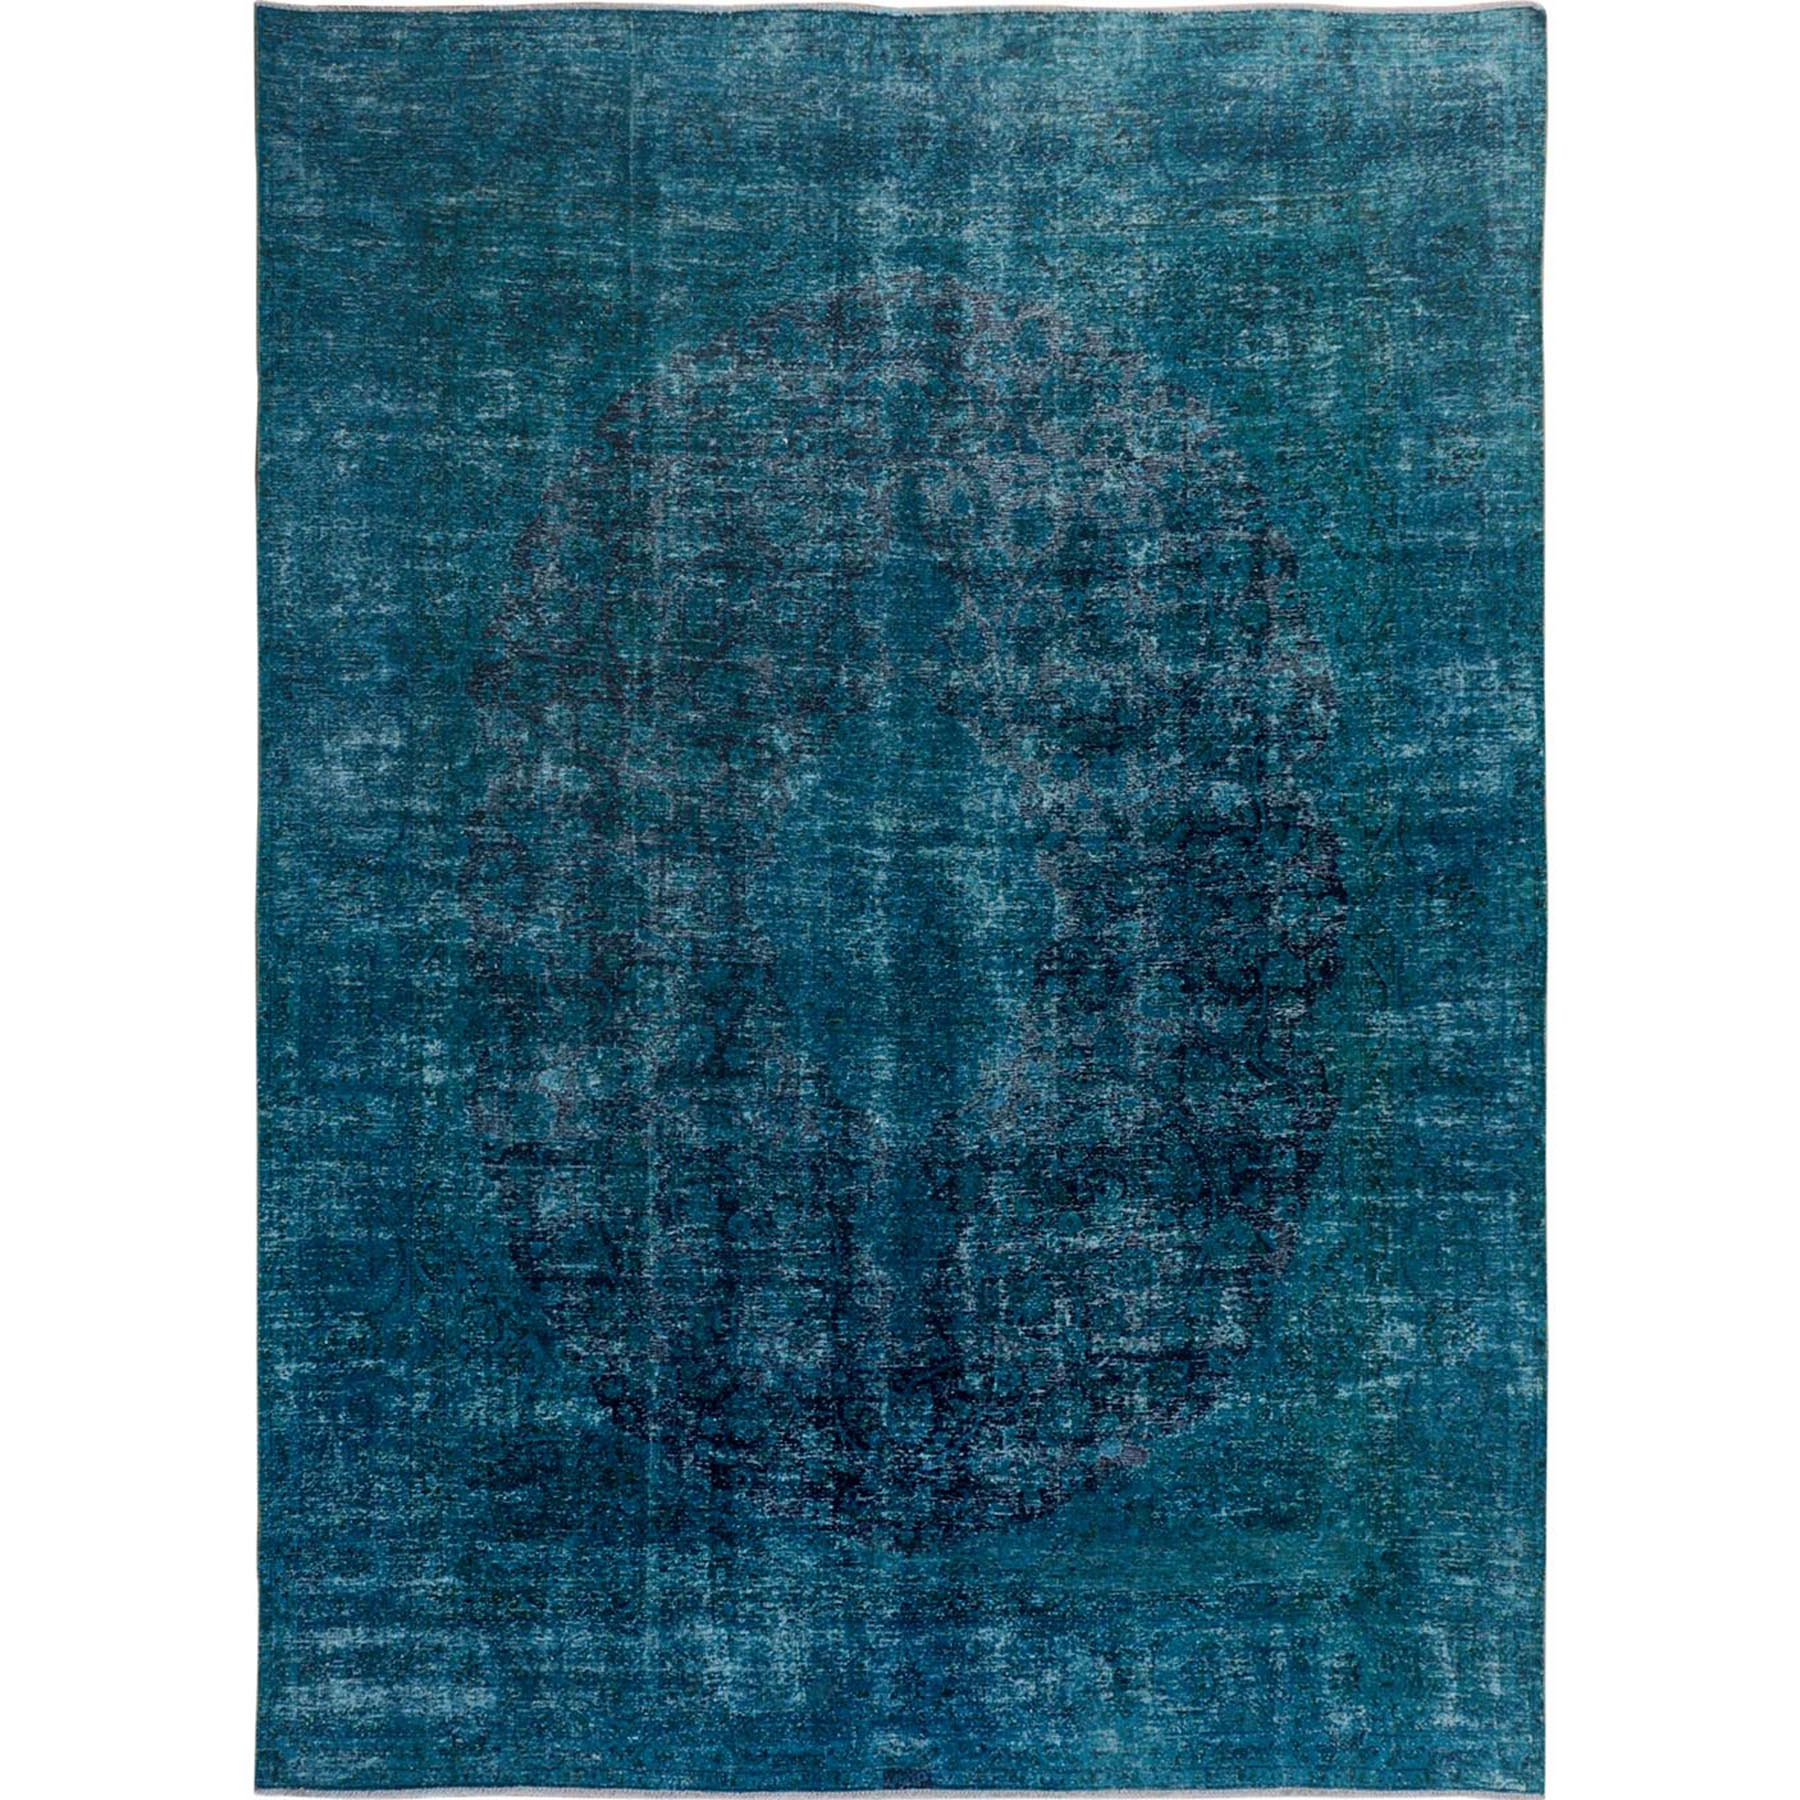 Fetneh Collection And Vintage Overdyed Collection Hand Knotted Green Rug No: 01114796